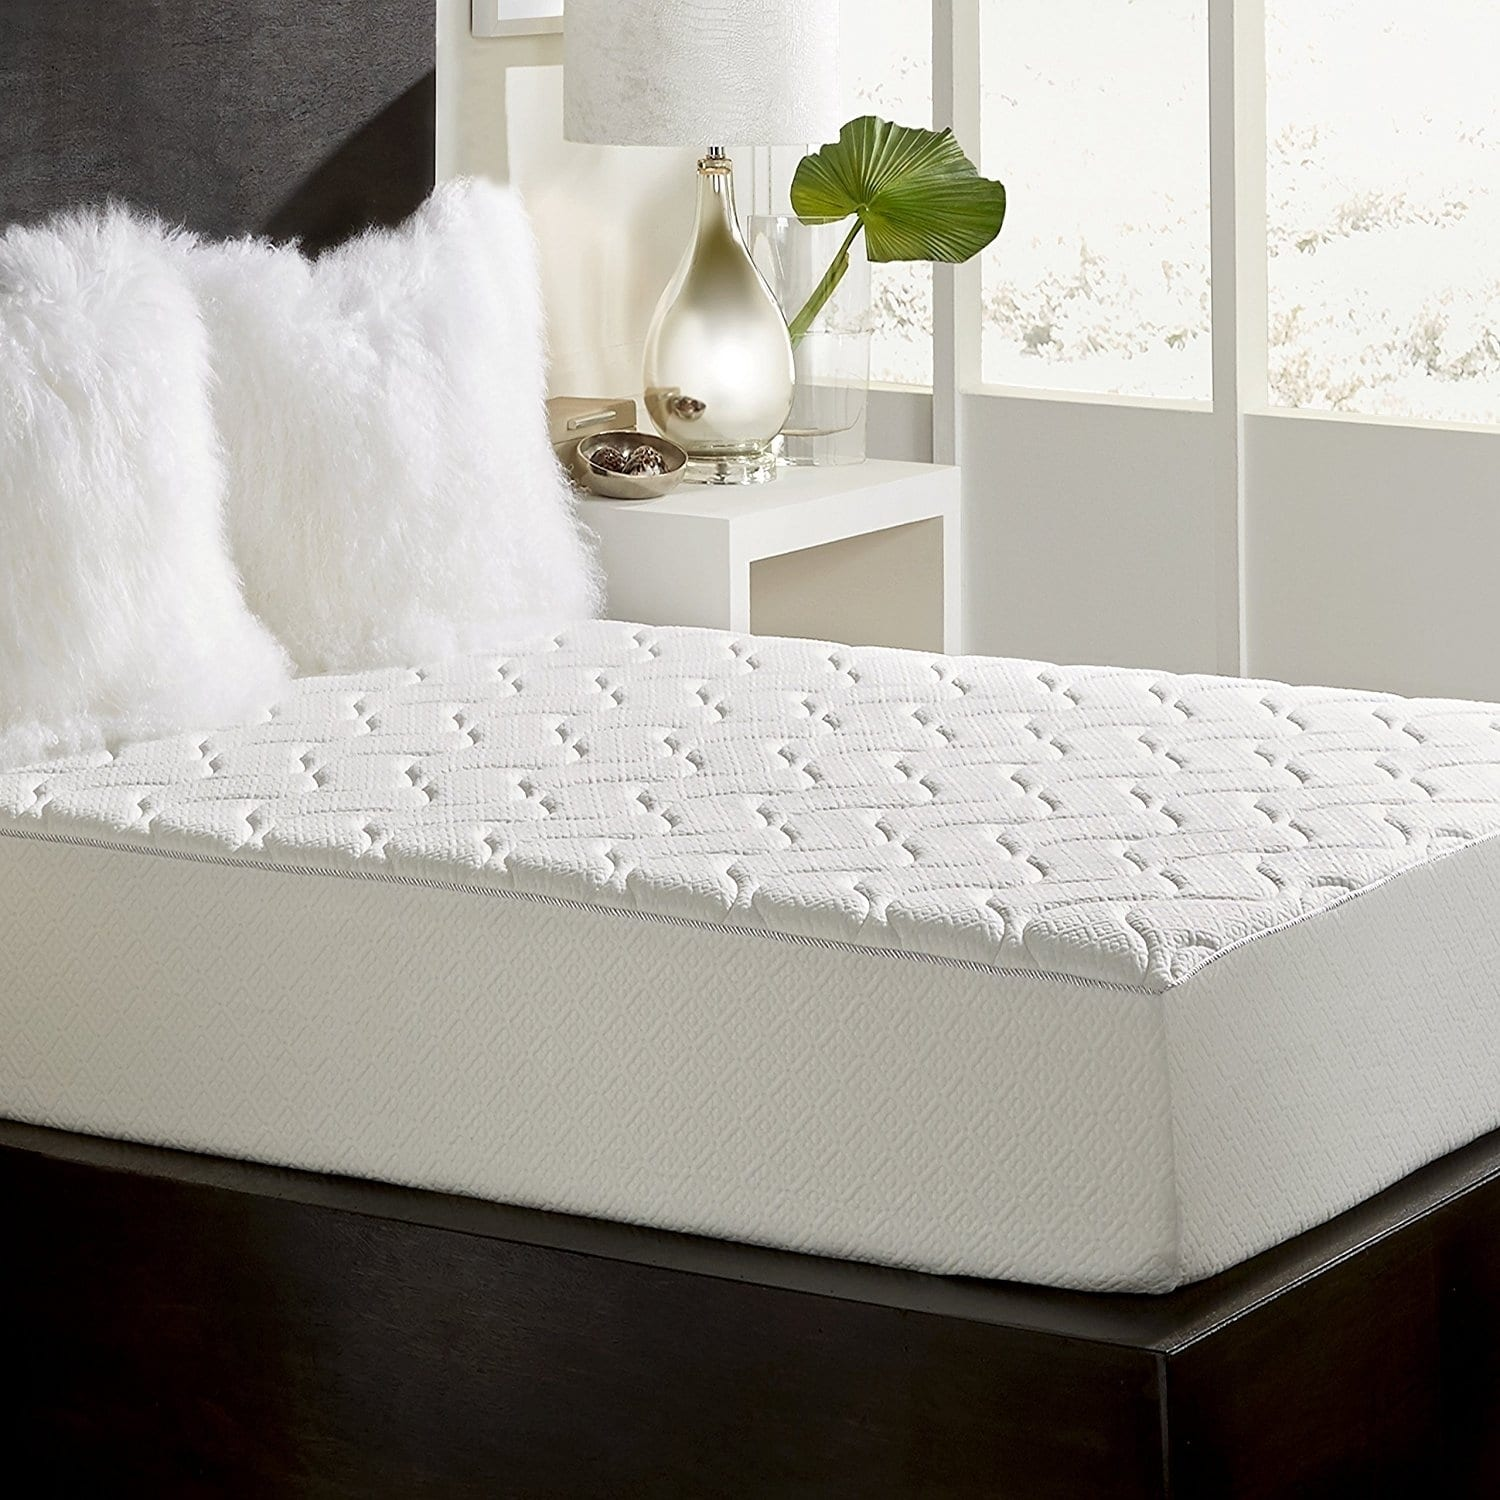 Hydrologie Cooling Waterproof Mattress Pad